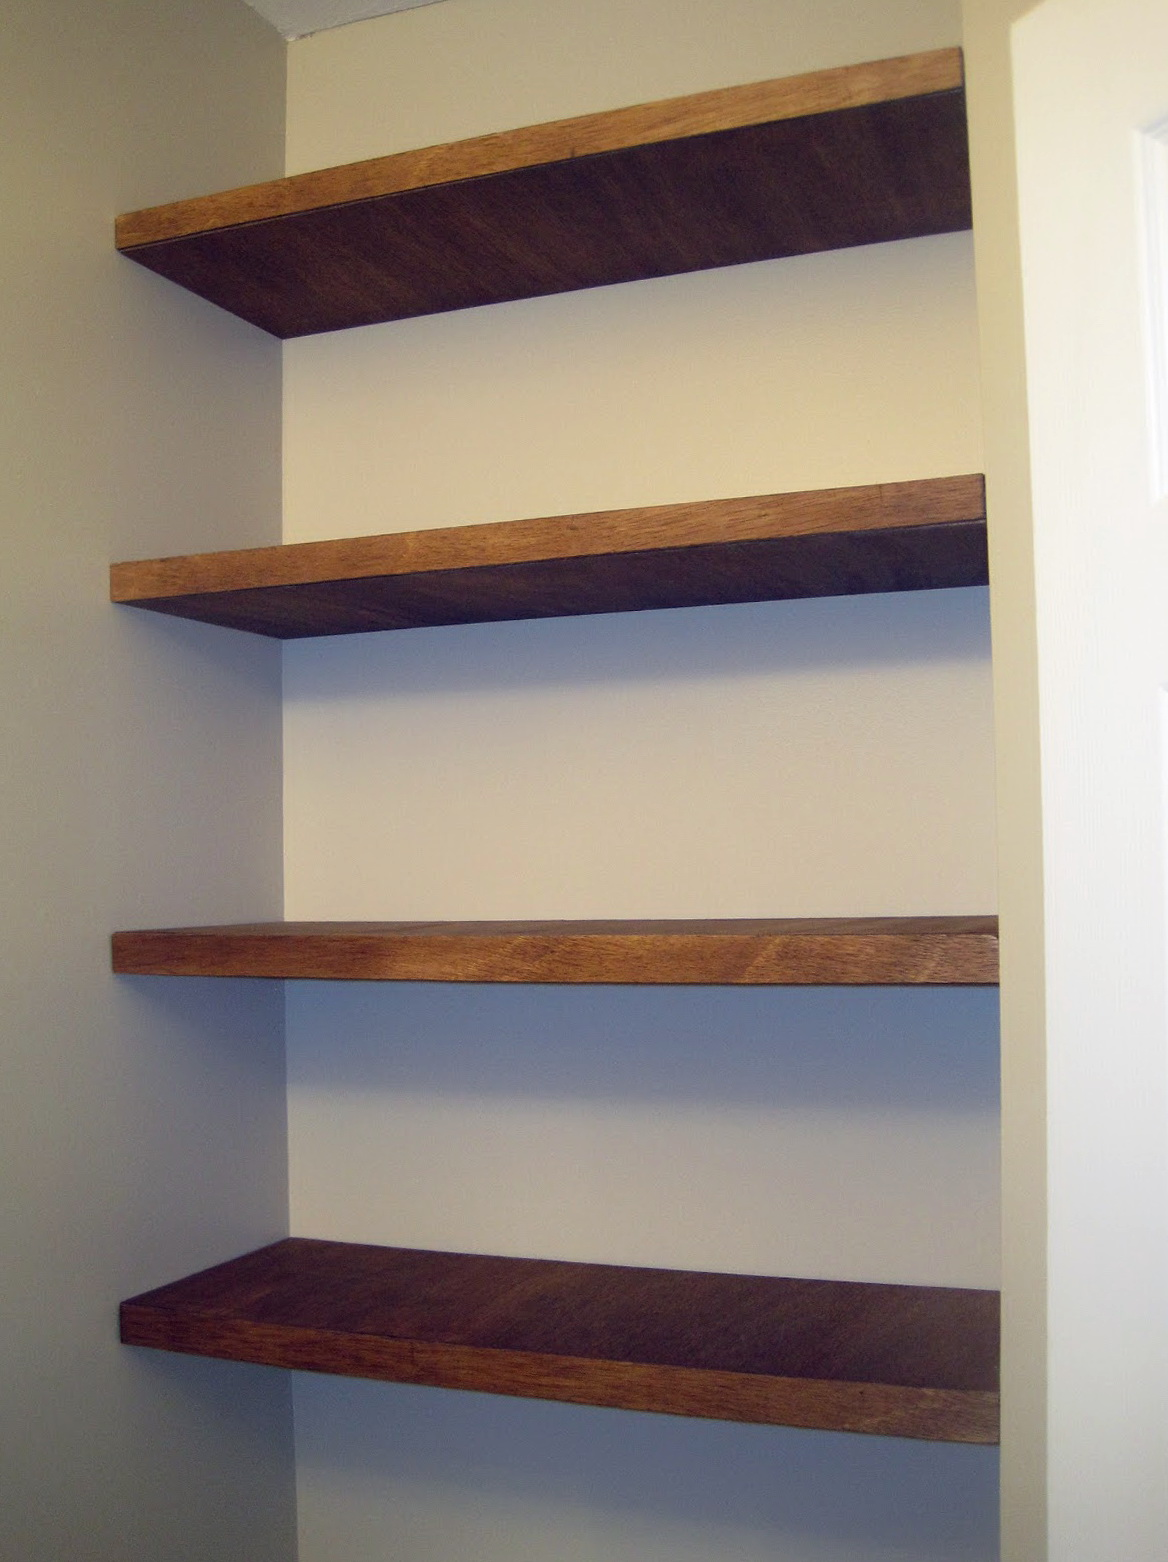 Cheap Wall Shelves Diy